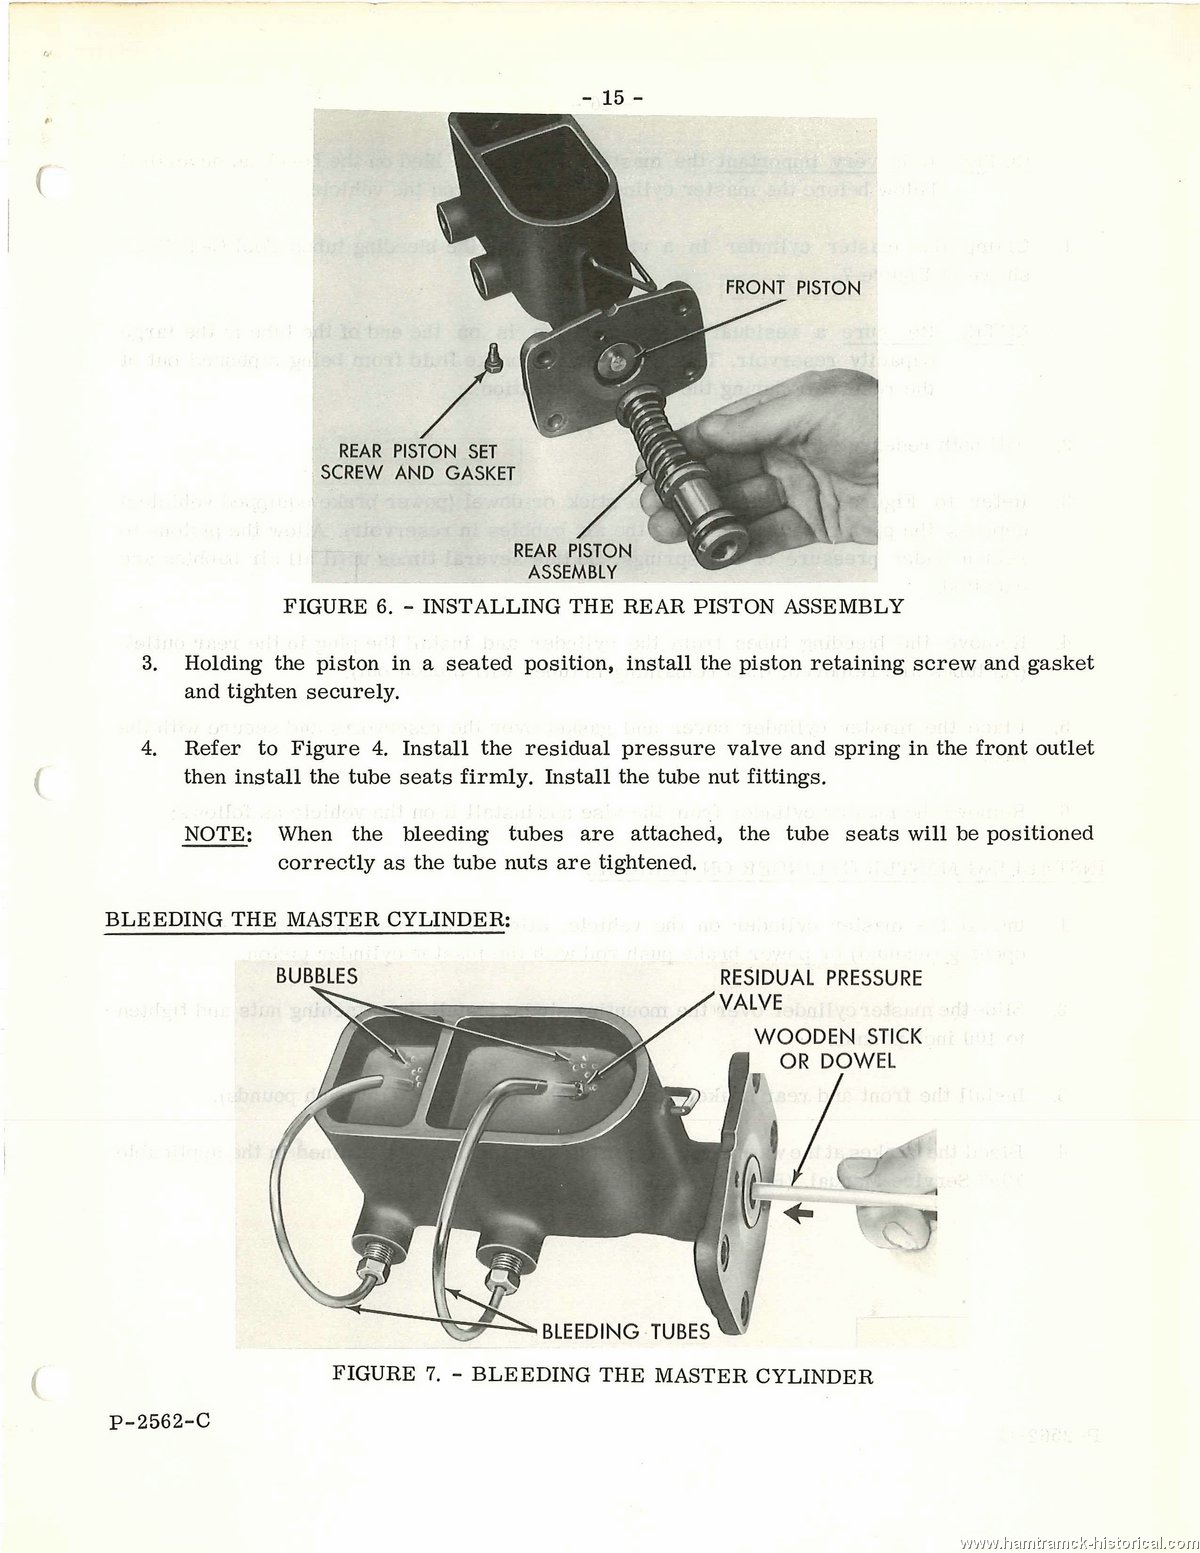 The 1970 Hamtramck Registry 1966 Tsbs And Related Material Index Page 3 8 Chrysler Engine Motor Mount Diagram 1 2 4 5 6 7 9 10 11 12 13 14